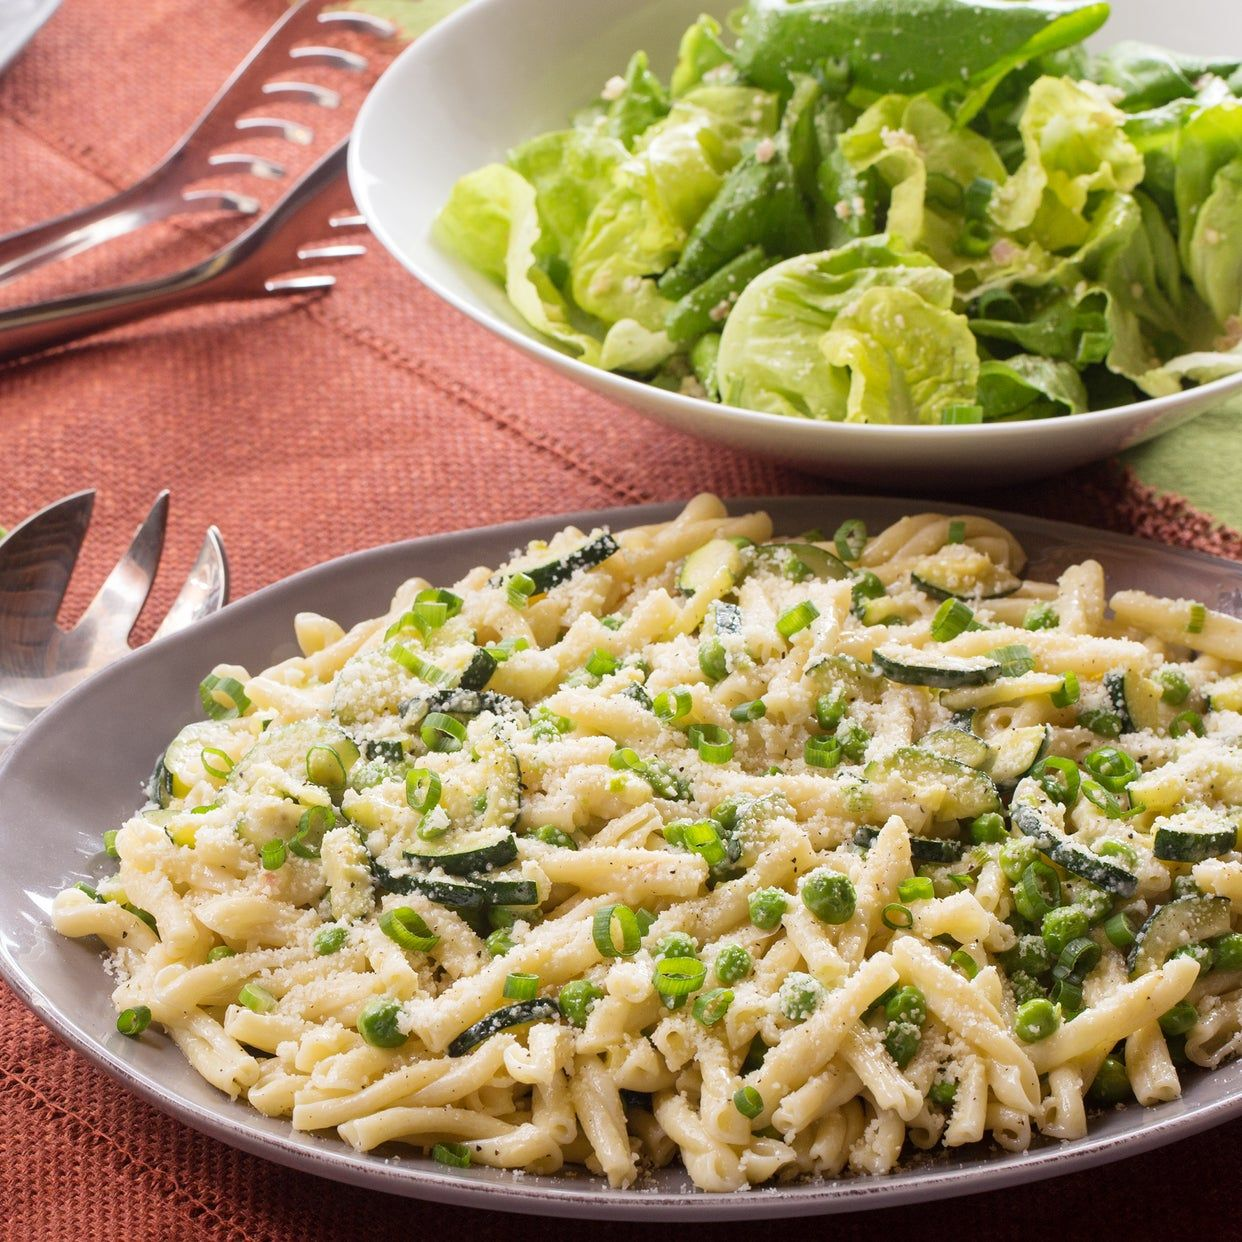 Creamy Strozzapreti Pasta With English Peas Zucchini Mascarpone